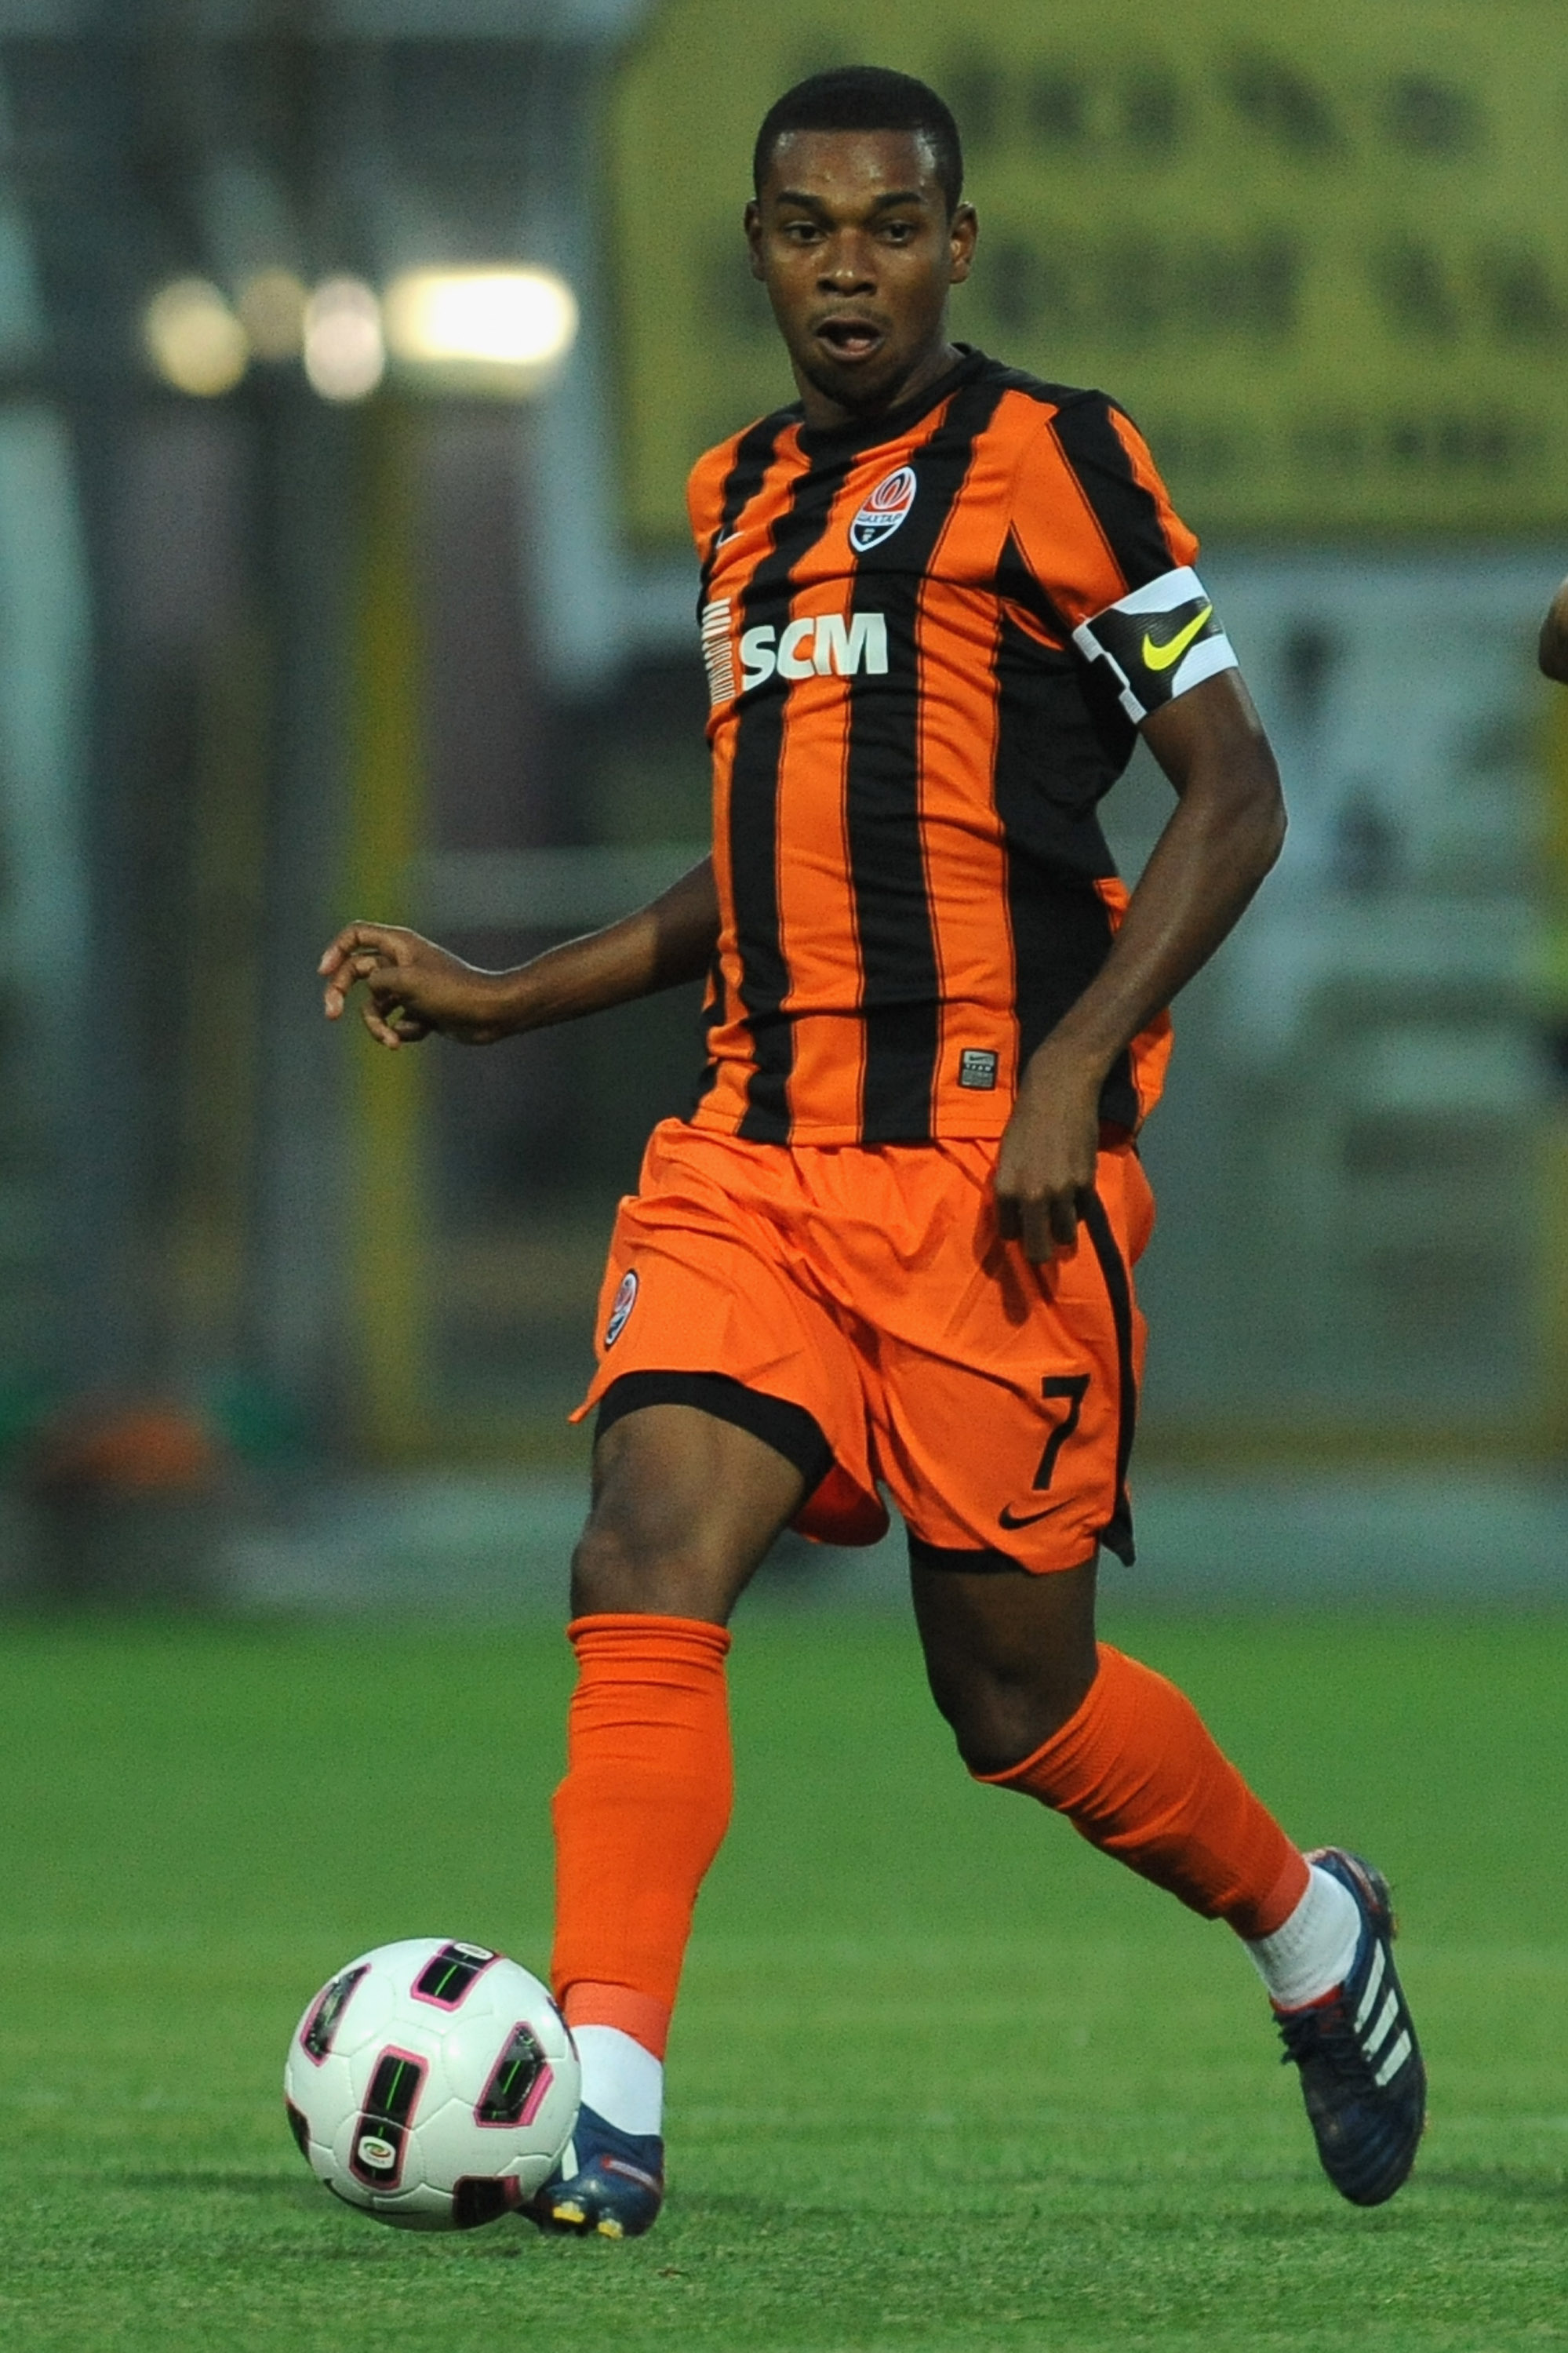 PARMA, ITALY - AUGUST 10:  Fernandinho of Shakhtar Donetsk in action during preseason frienldy match between Parma FC and Shakhtar Donetsk at Ennio Tardini Stadium on August 10, 2010 in Parma, Italy.  (Photo by Valerio Pennicino/Getty Images)